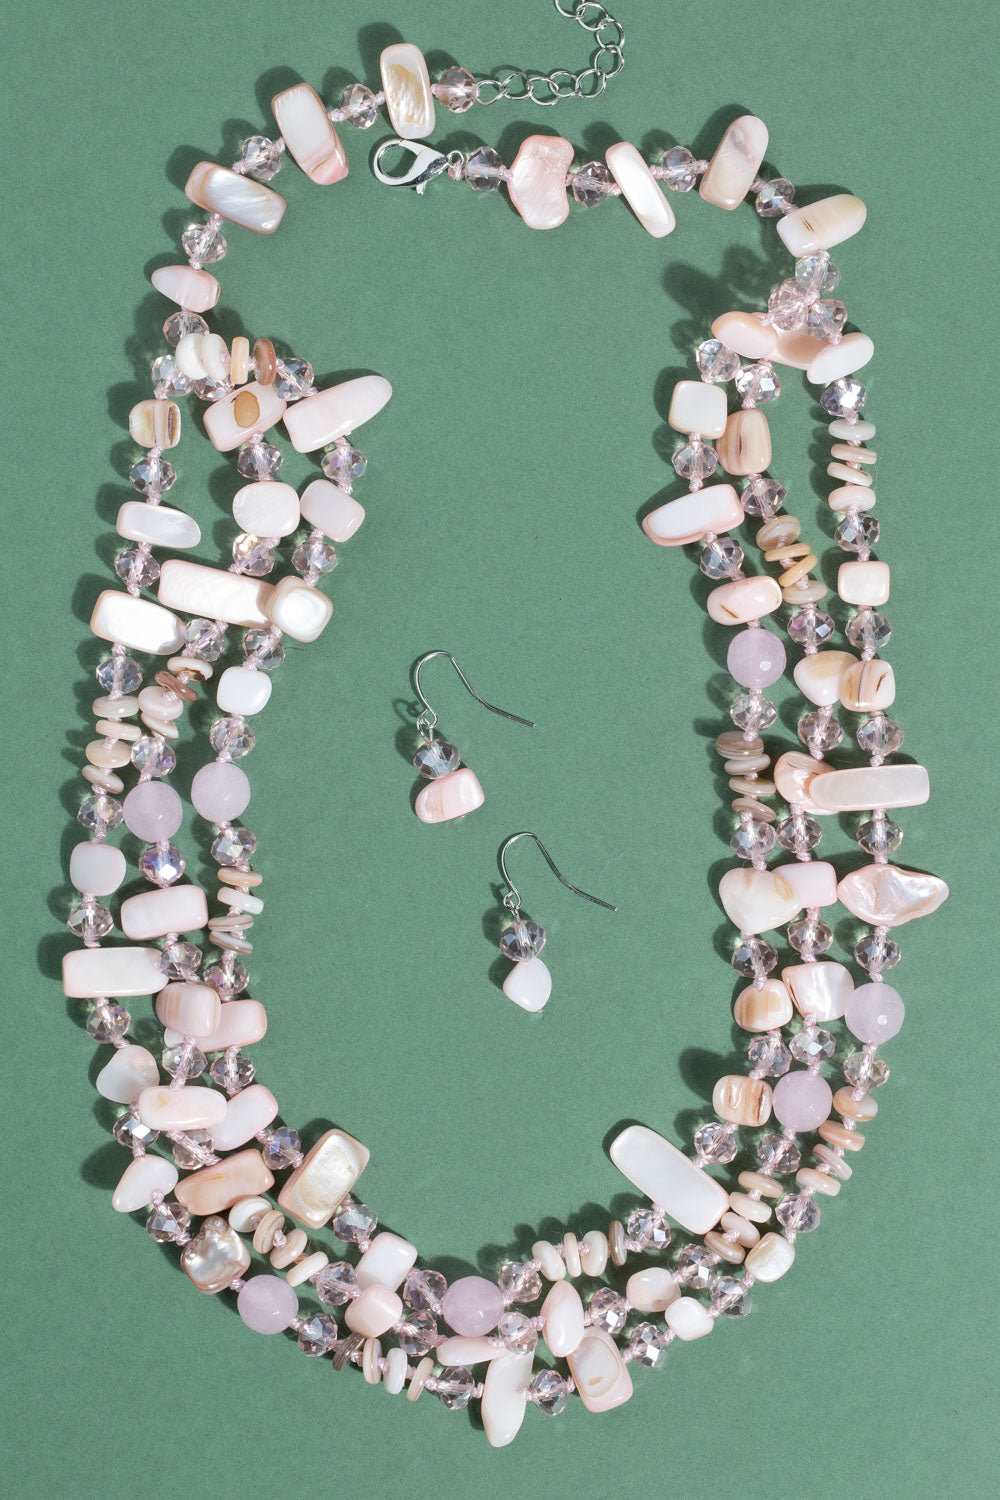 Type 2 Precious Pebbles Necklace/Earring set